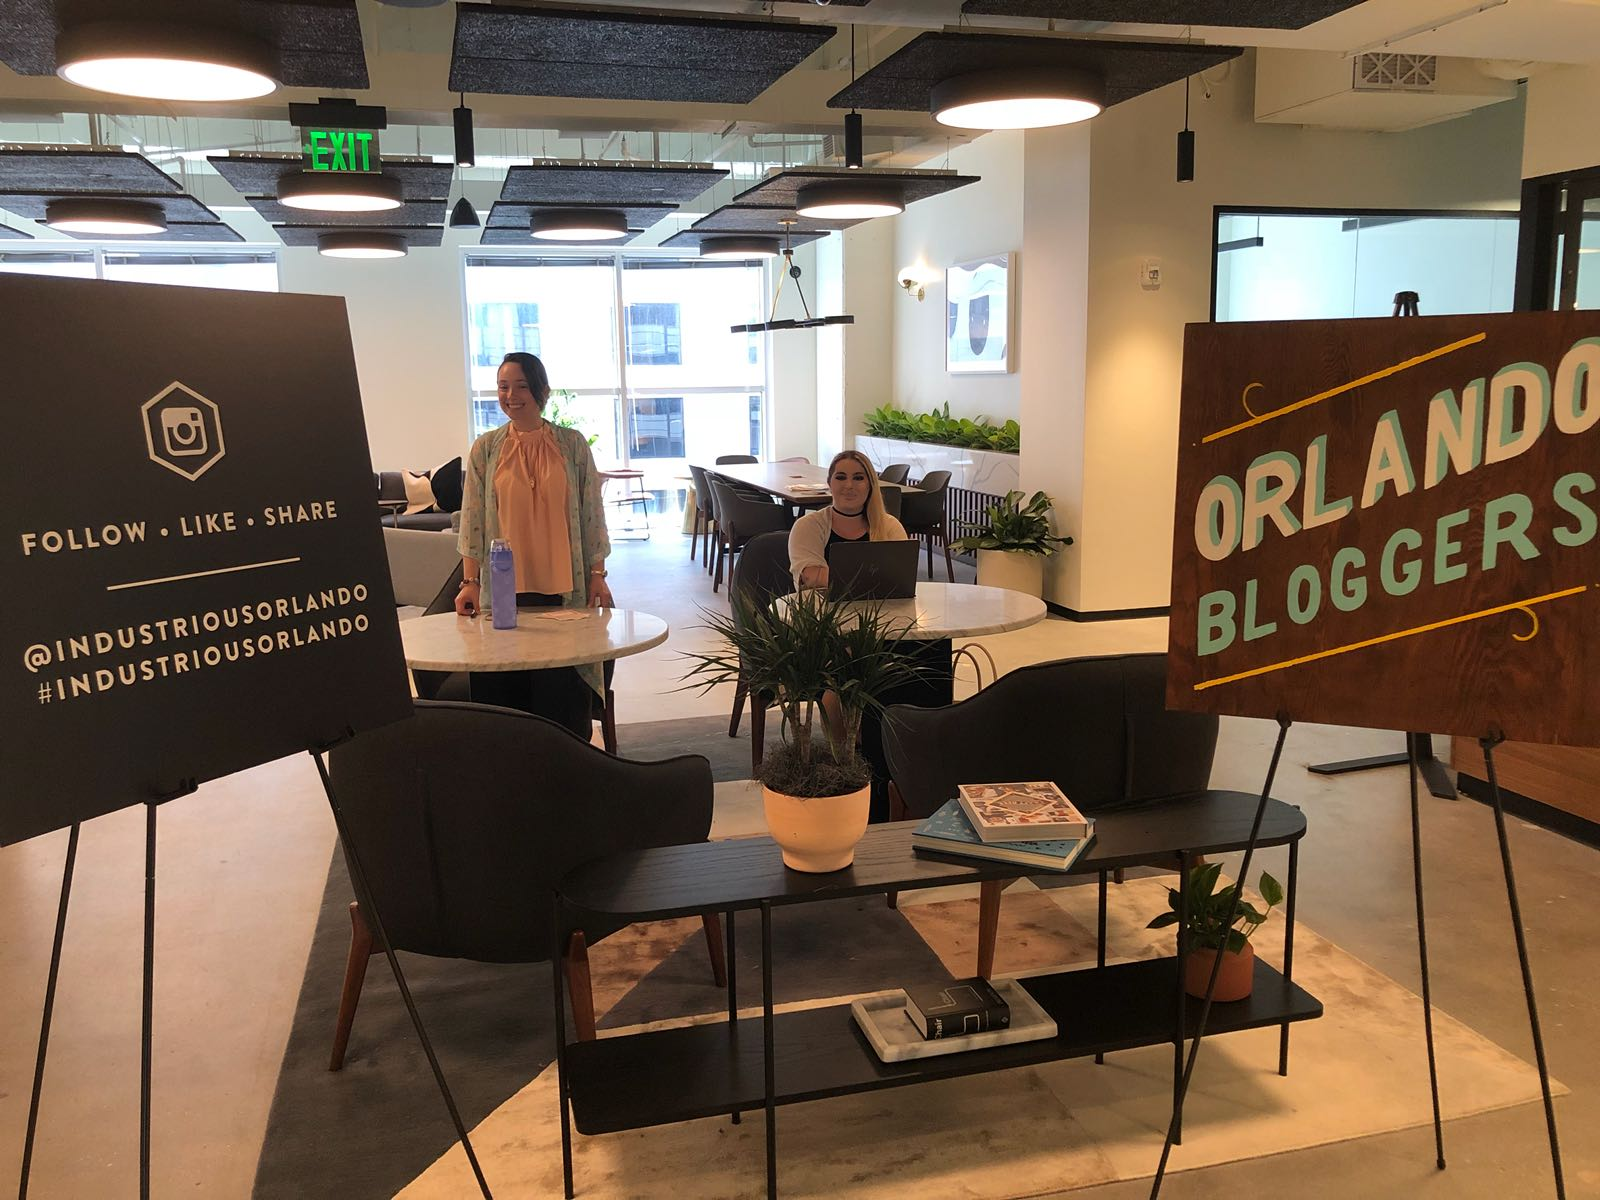 Orlando Bloggers June 2018 Meetup Sign in at Industrious Orlando